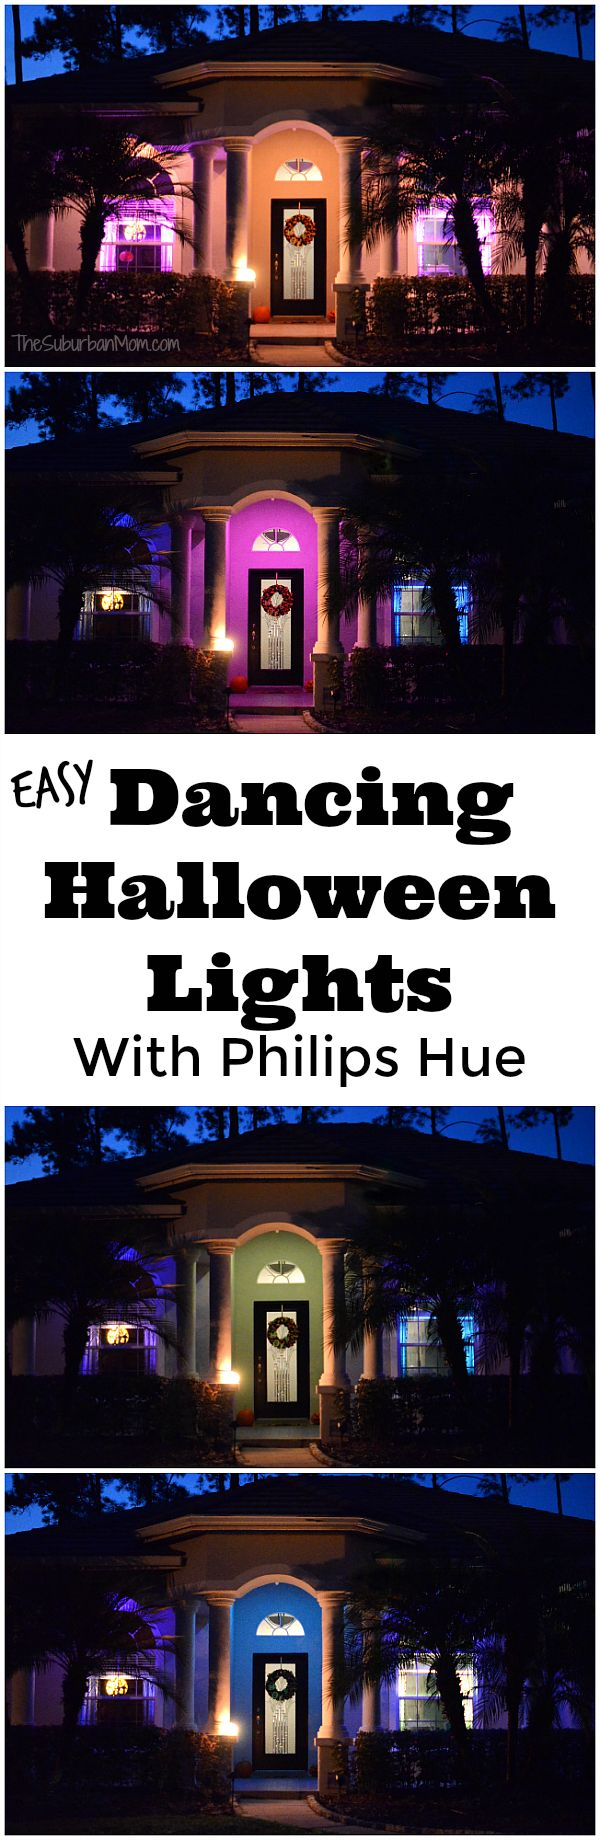 Dancing Halloween Lights - The Philips Hue Halloween app makes it easy to create a dancing light show for Halloween. Use indoors or outdoors for an awesome effect, watch the video.